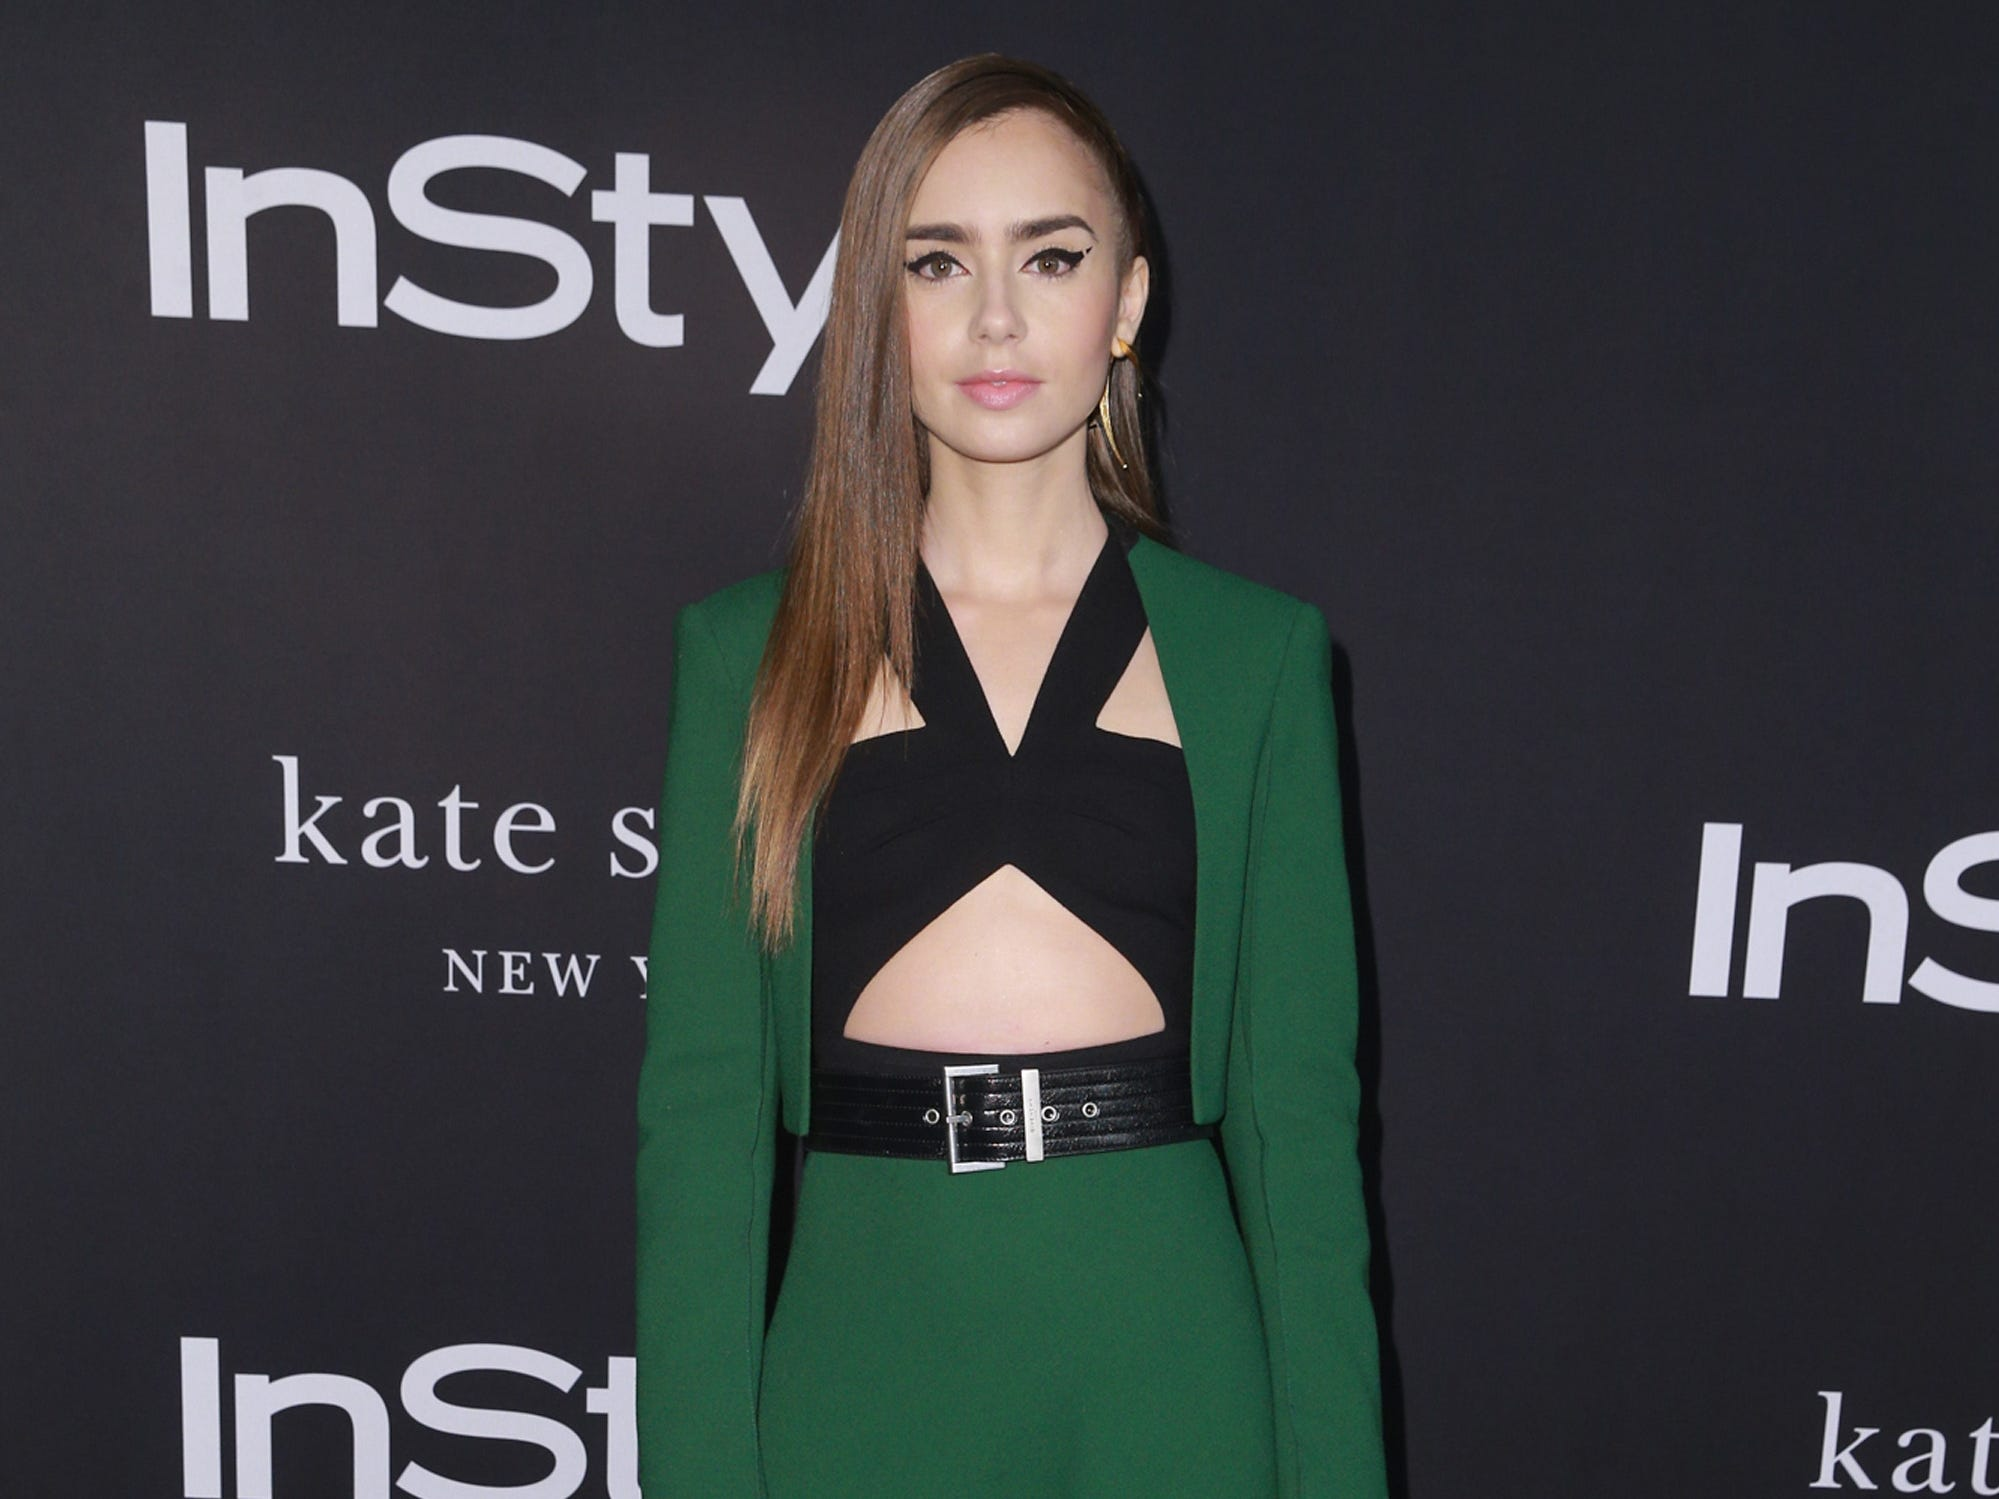 LOS ANGELES, CA - OCTOBER 22:  Lily Collins attends the 2018 InStyle Awards at The Getty Center on October 22, 2018 in Los Angeles, California.  (Photo by Rich Fury/Getty Images) ORG XMIT: 775236597 ORIG FILE ID: 1052793448